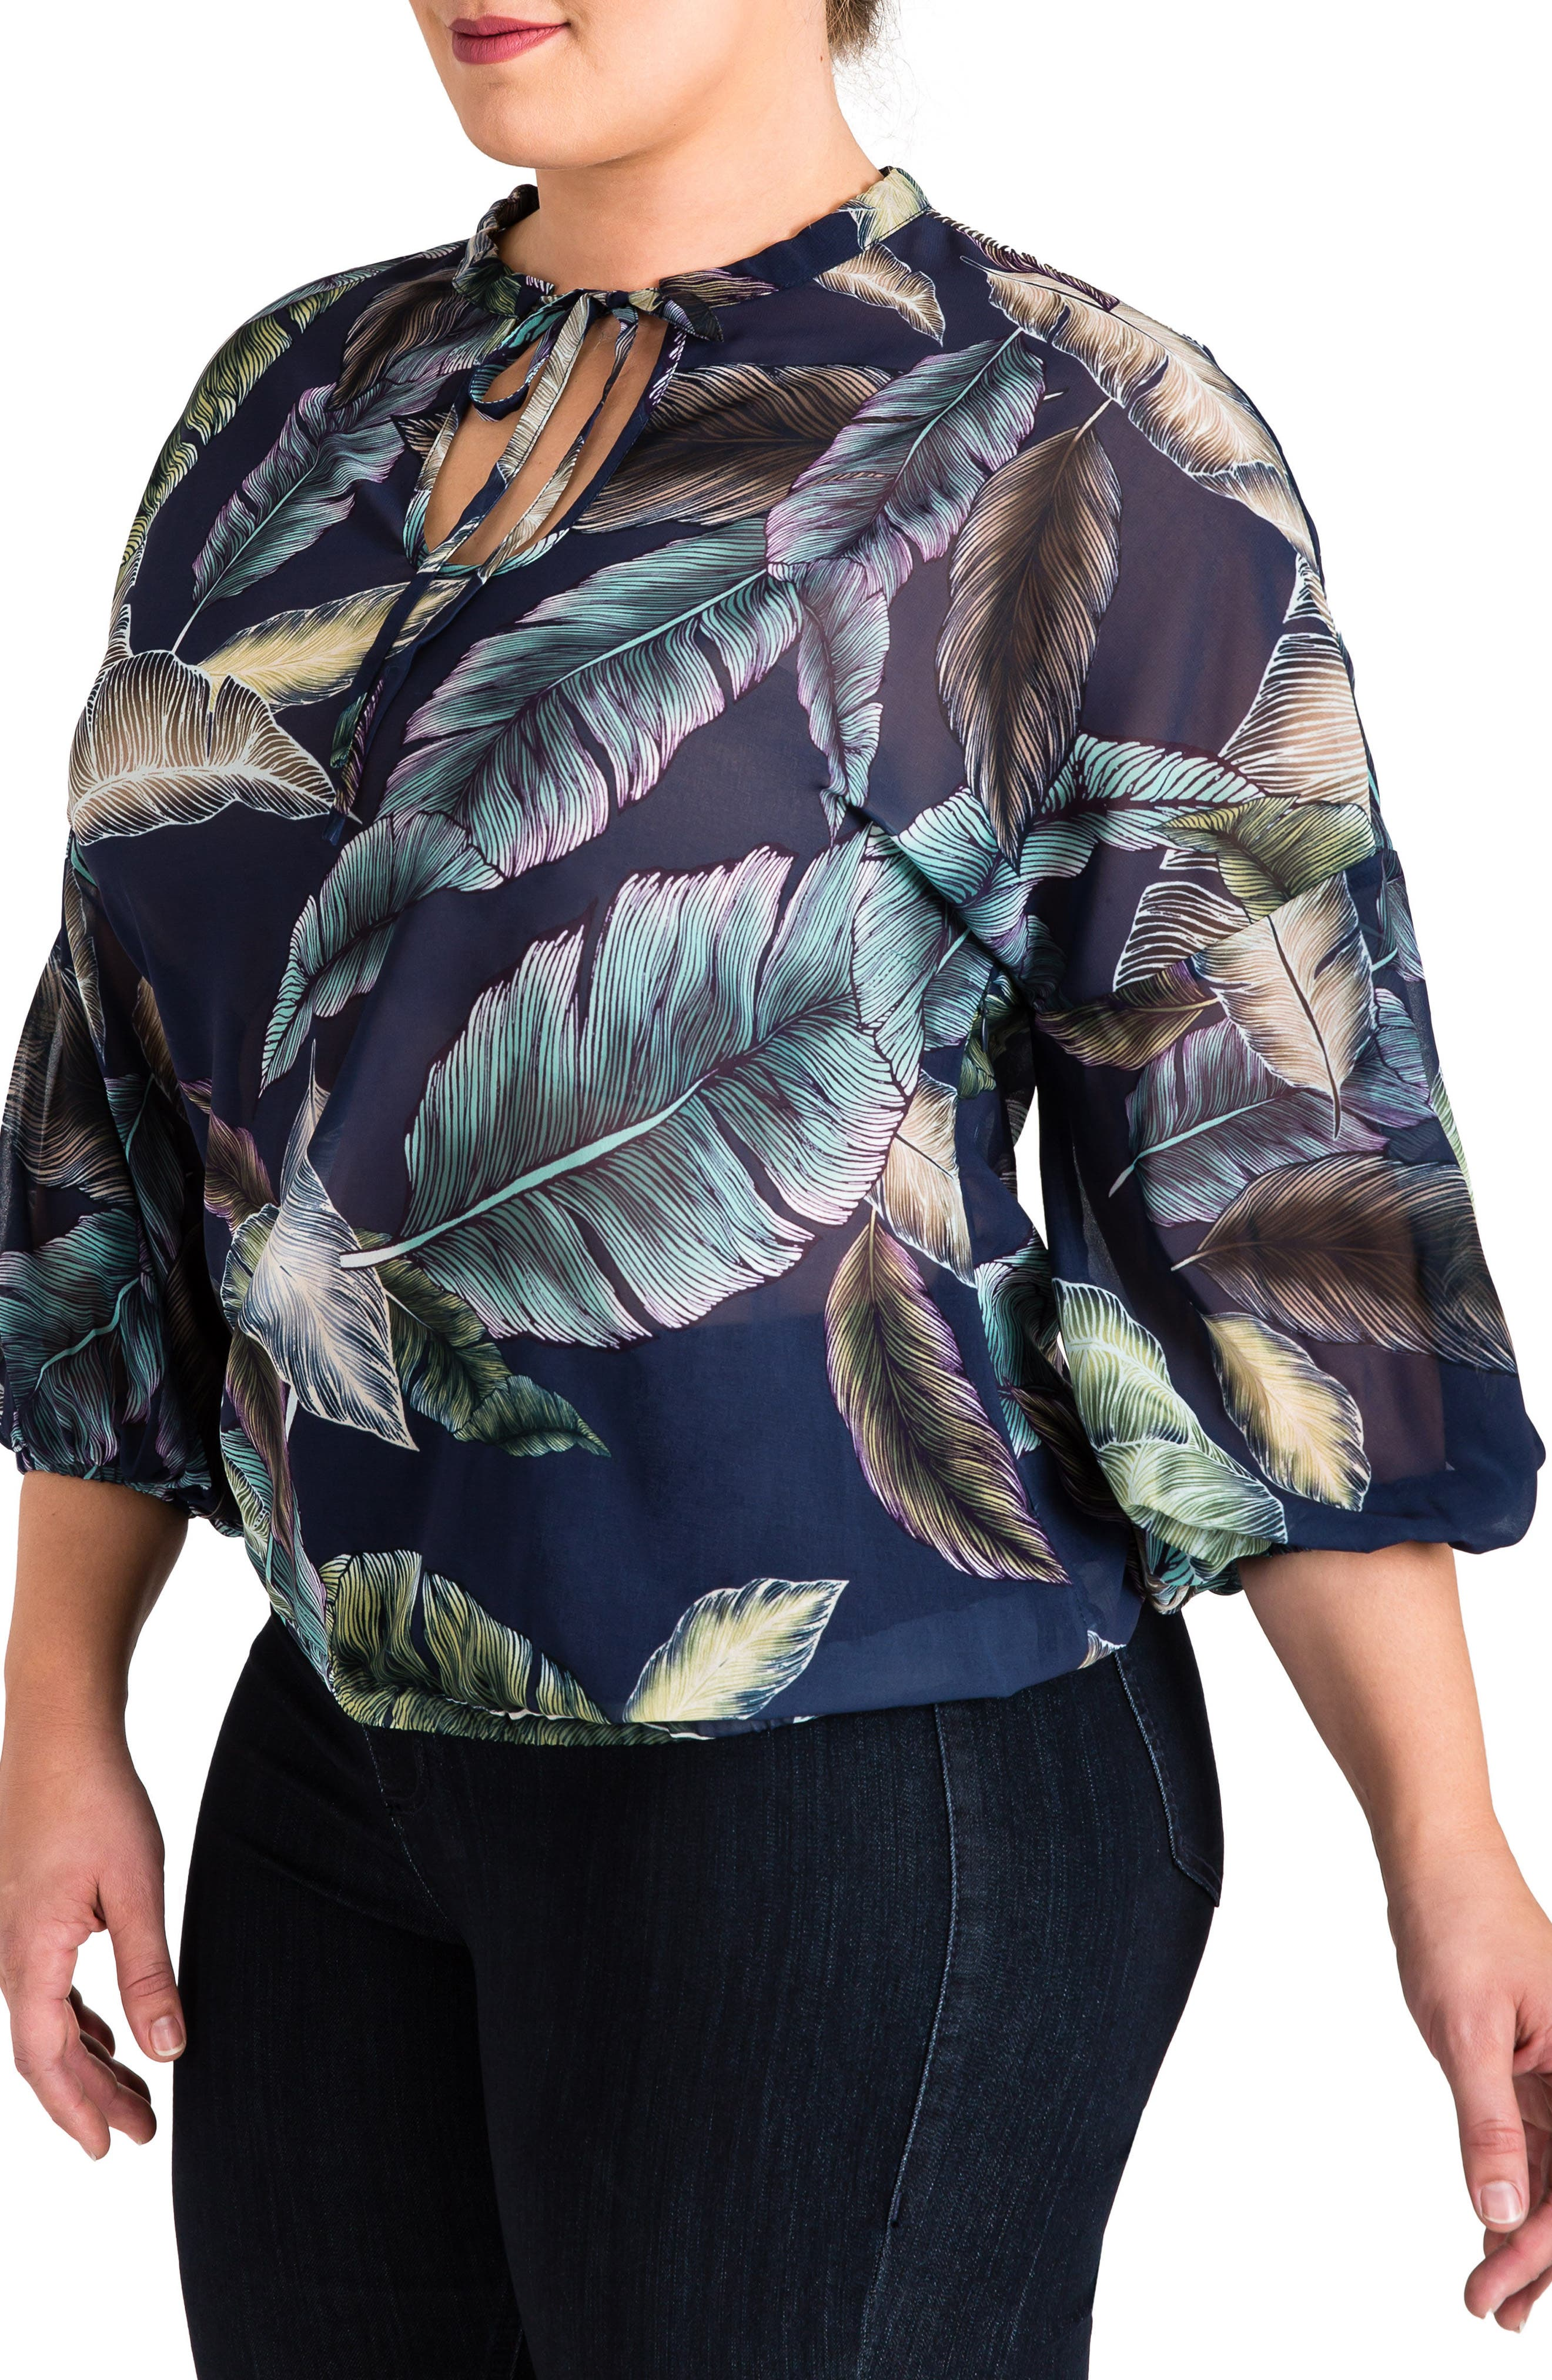 Lizzy Print Top,                             Alternate thumbnail 3, color,                             950